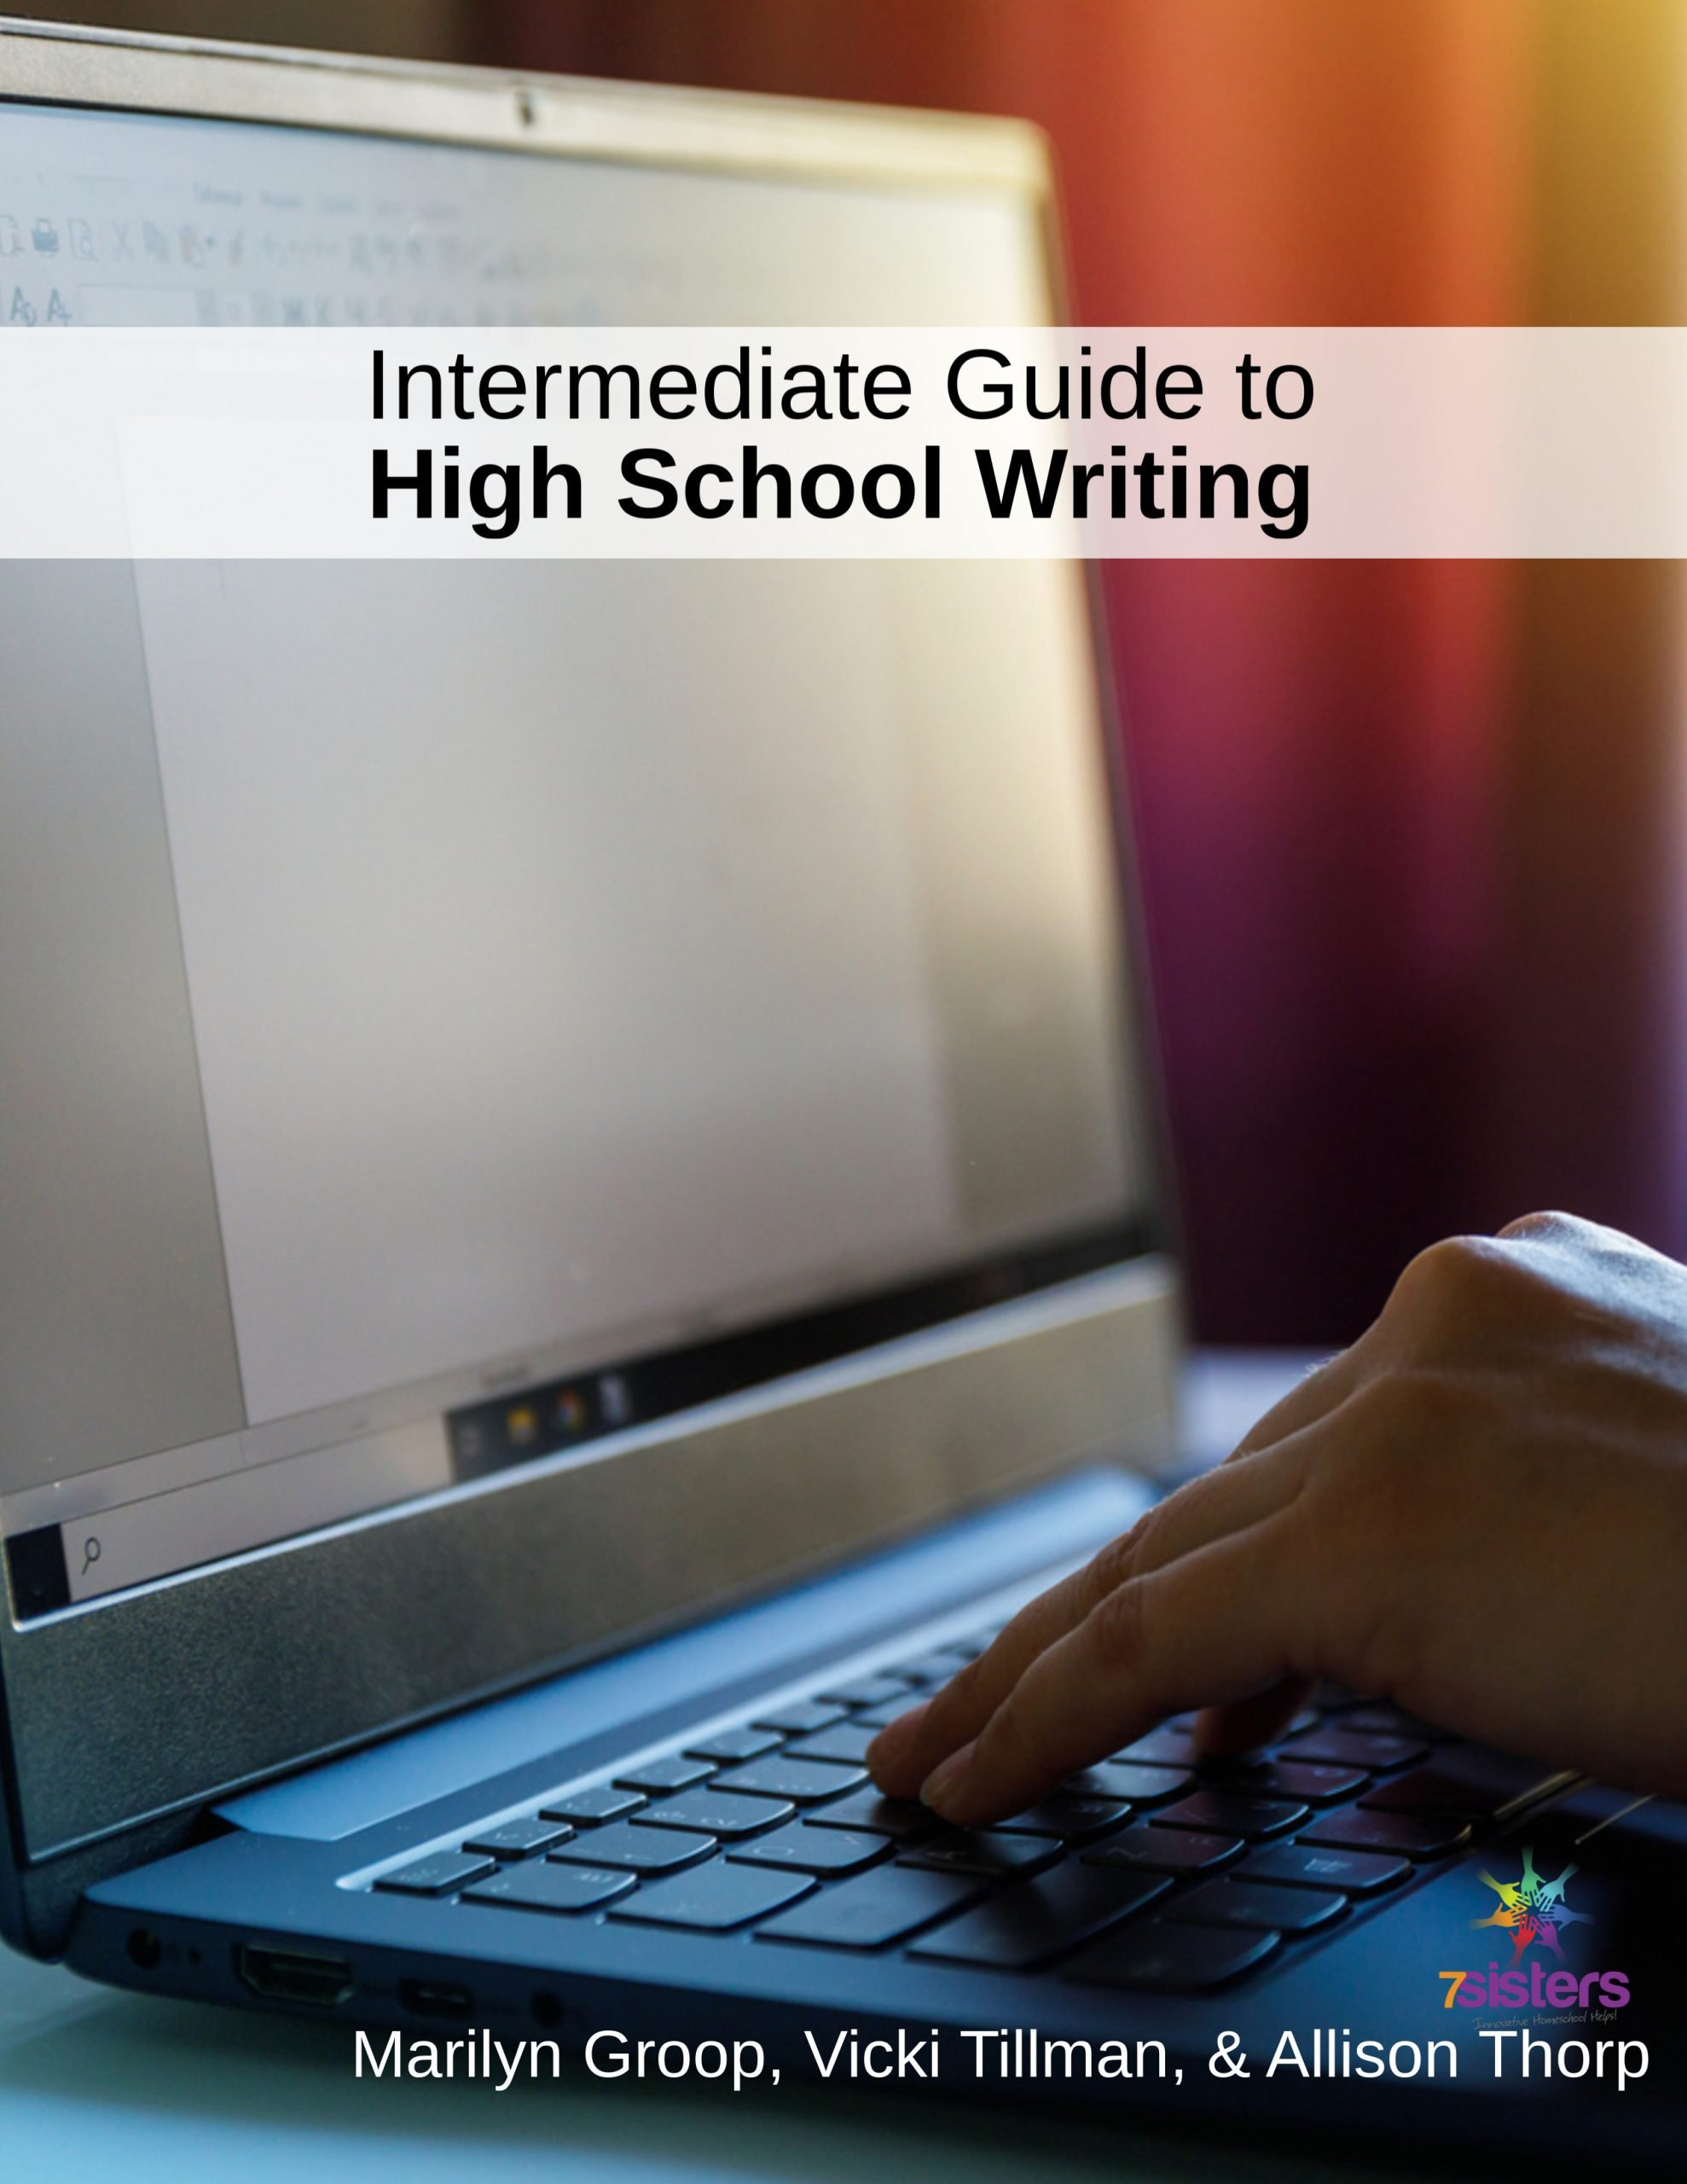 Intermediate Guide to High School Writing